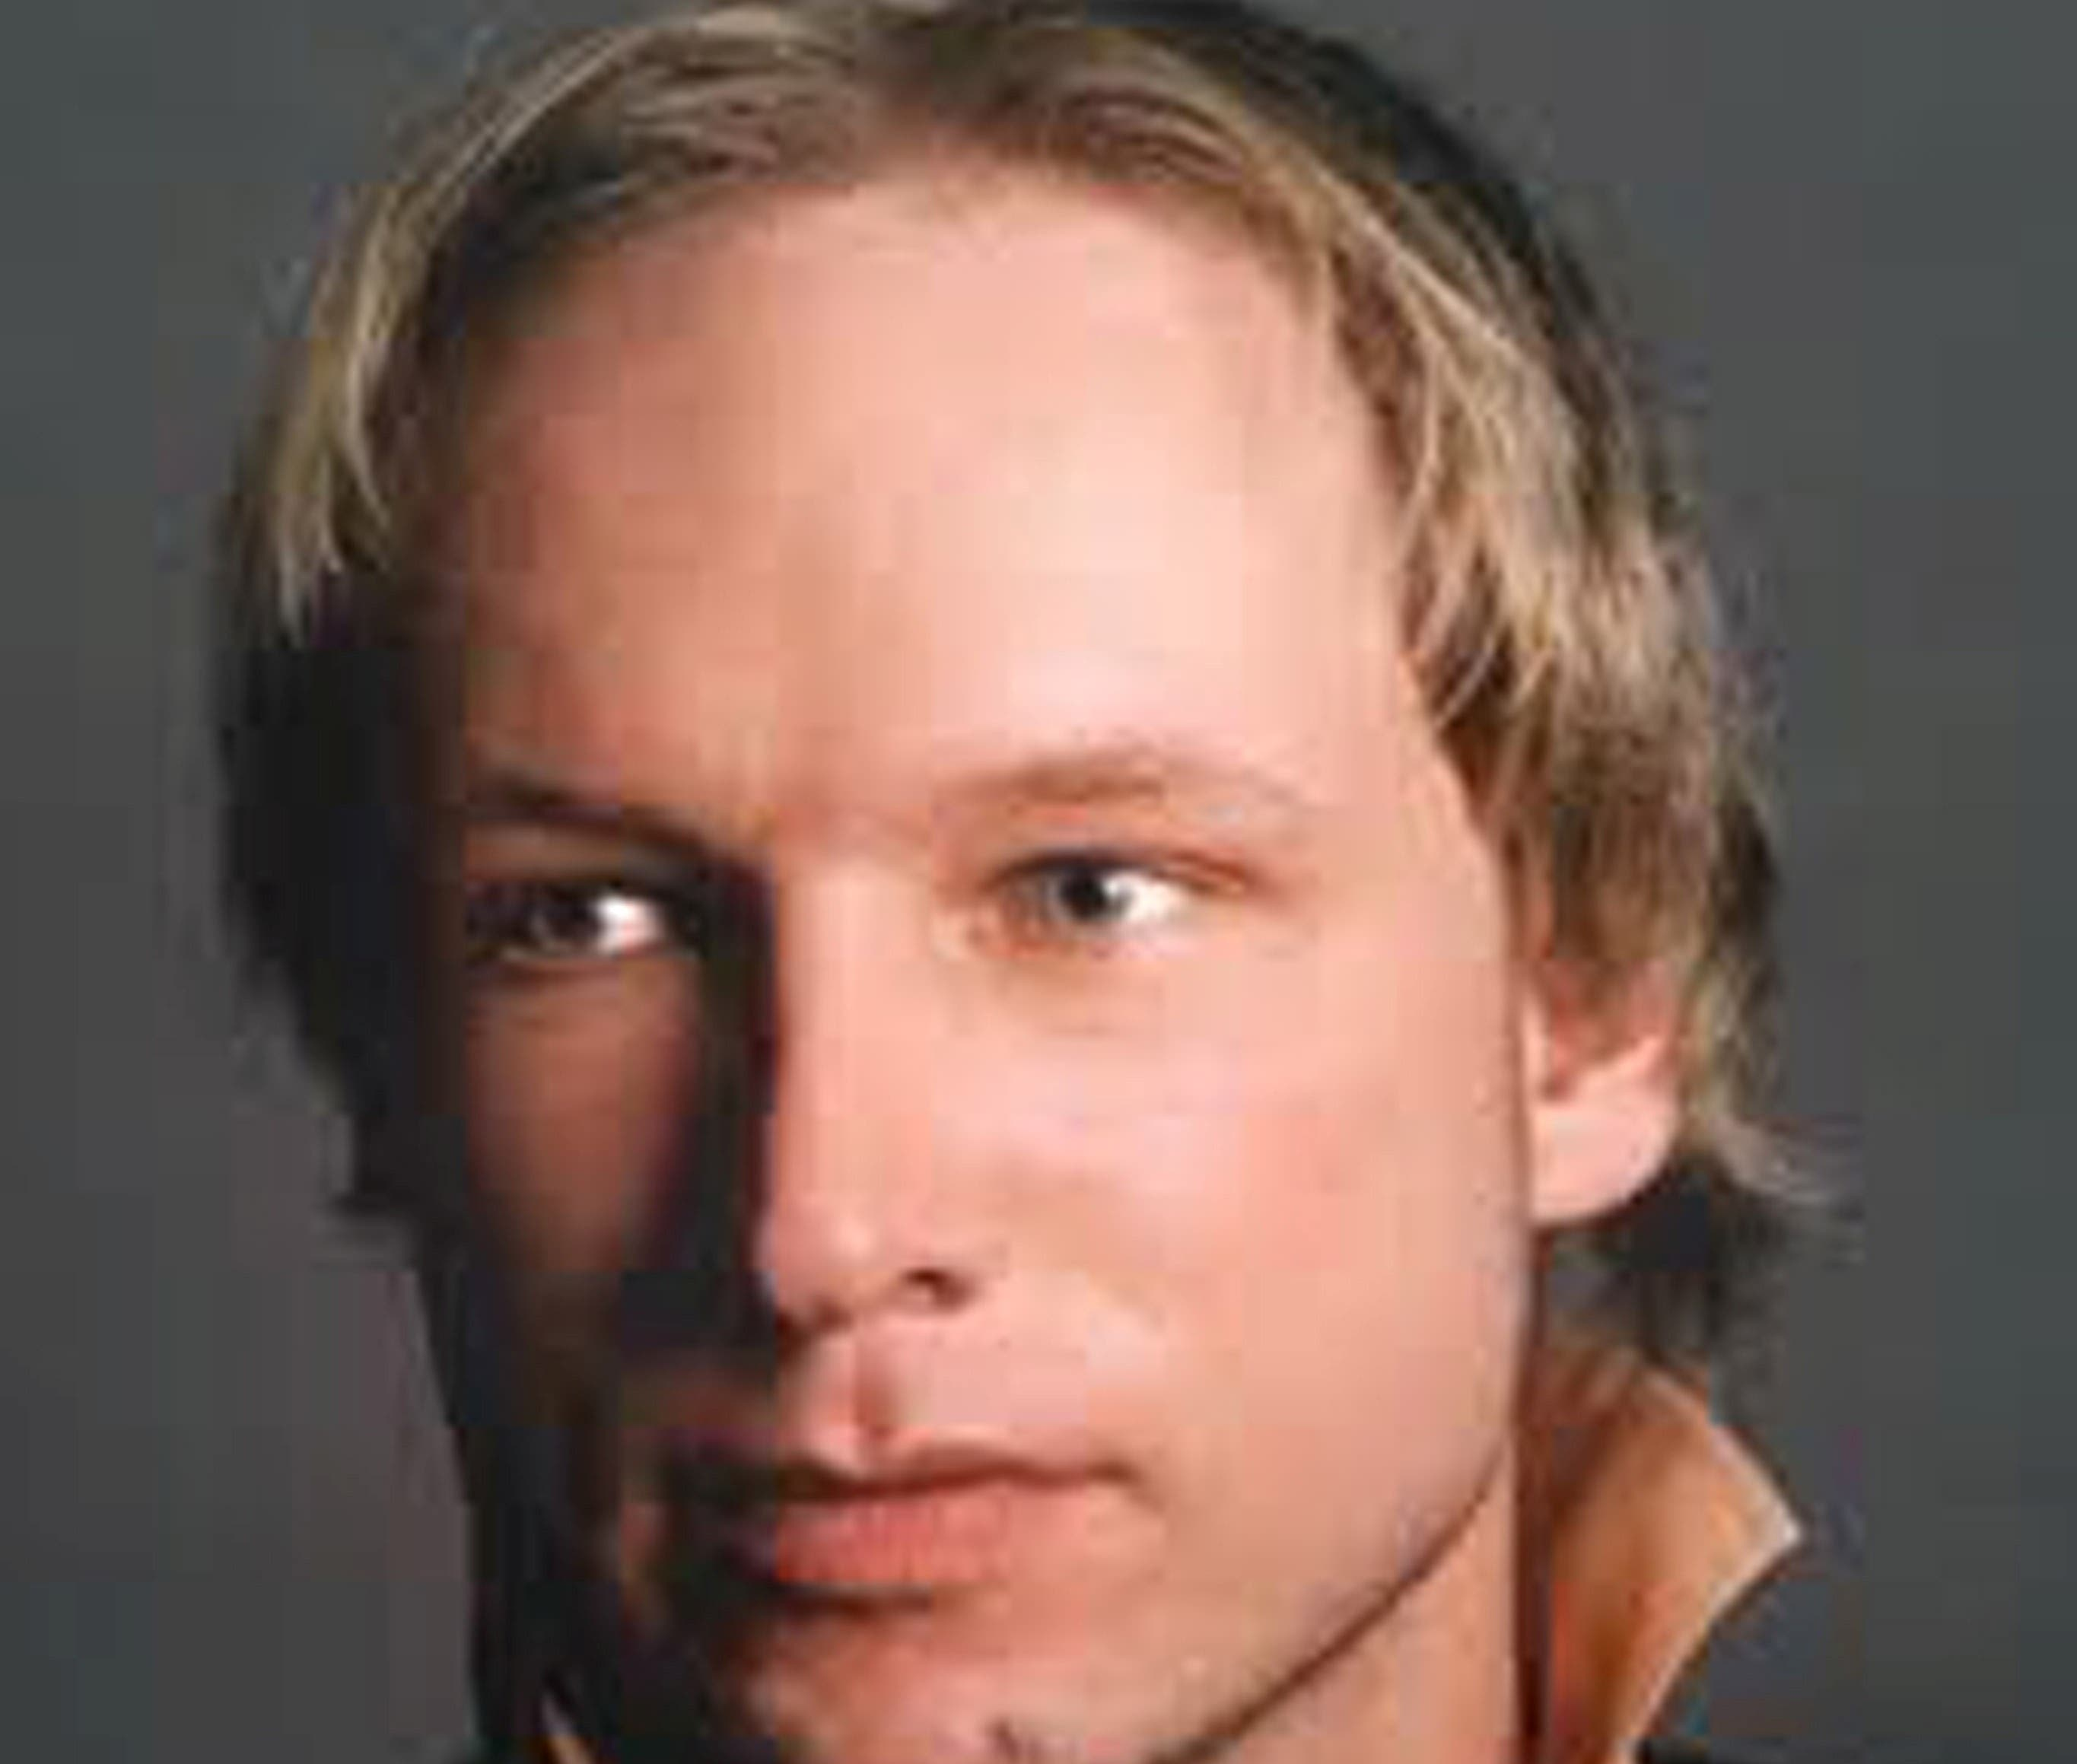 Anders Behring Breivik is the tall blonde suspect behind the shooting and bombing that devastated Oslo and Utoya. Said to  be a